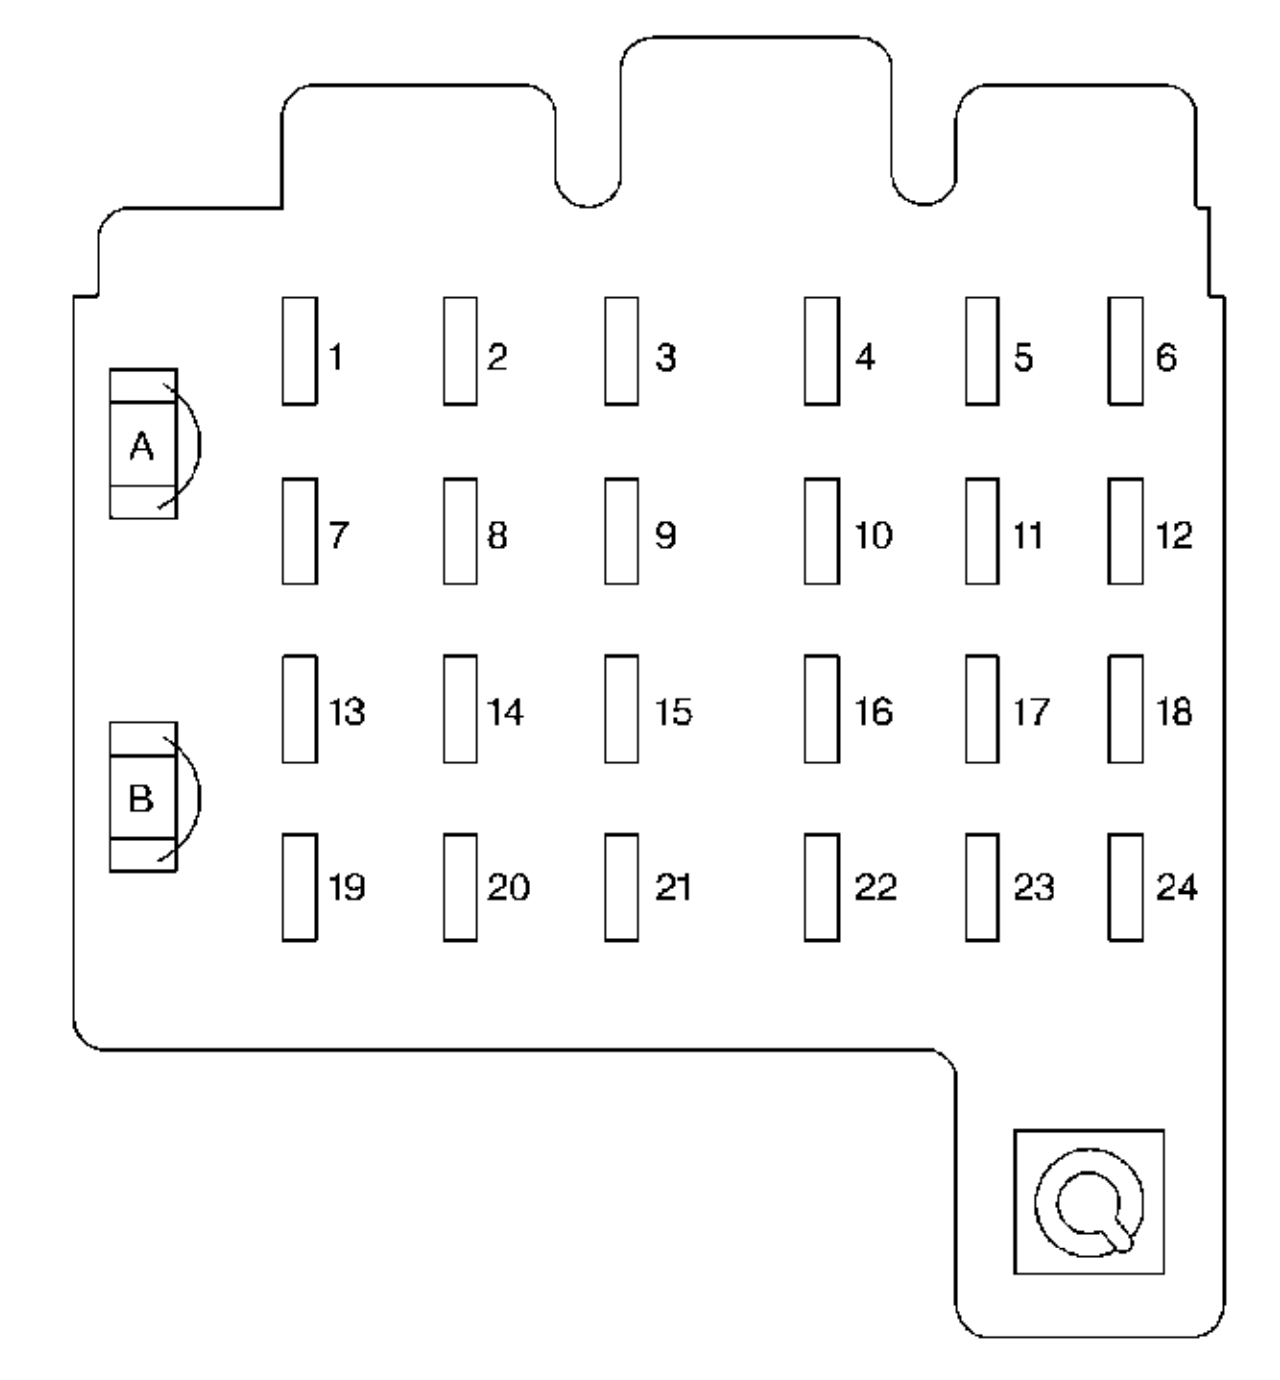 hight resolution of 1999 escalade fuse diagram wiring diagram name 1999 cadillac escalade fuse box